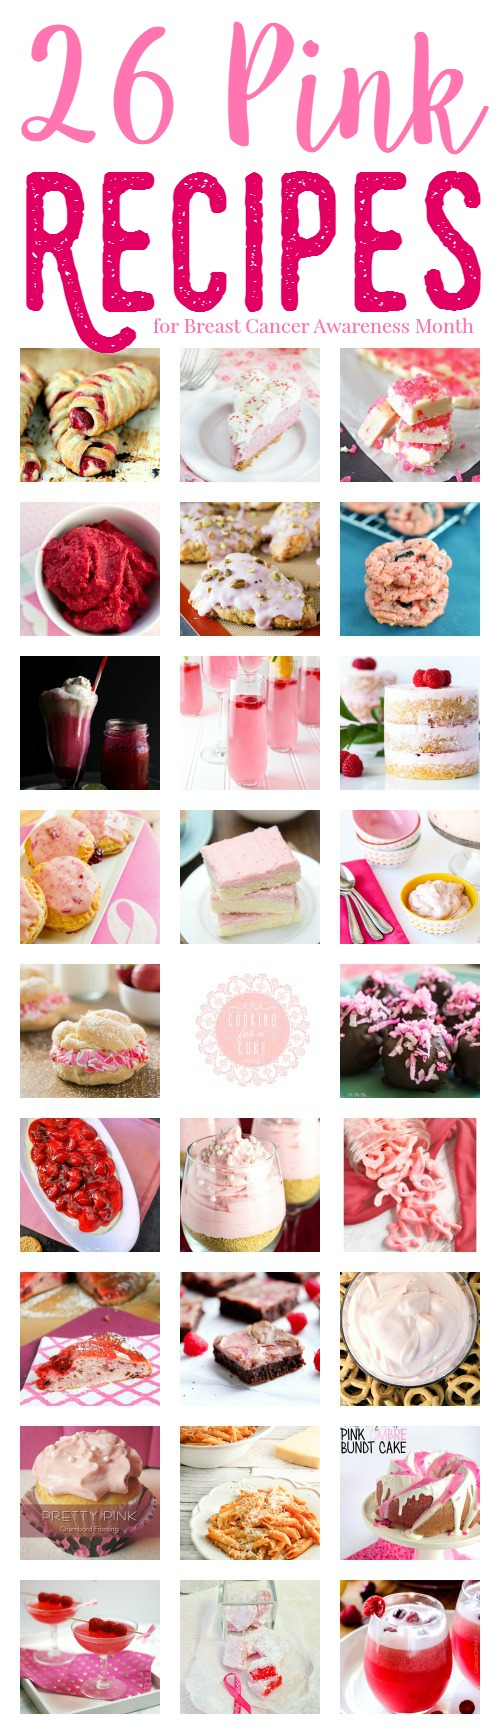 26 Pink Recipes for Breast Cancer Awareness